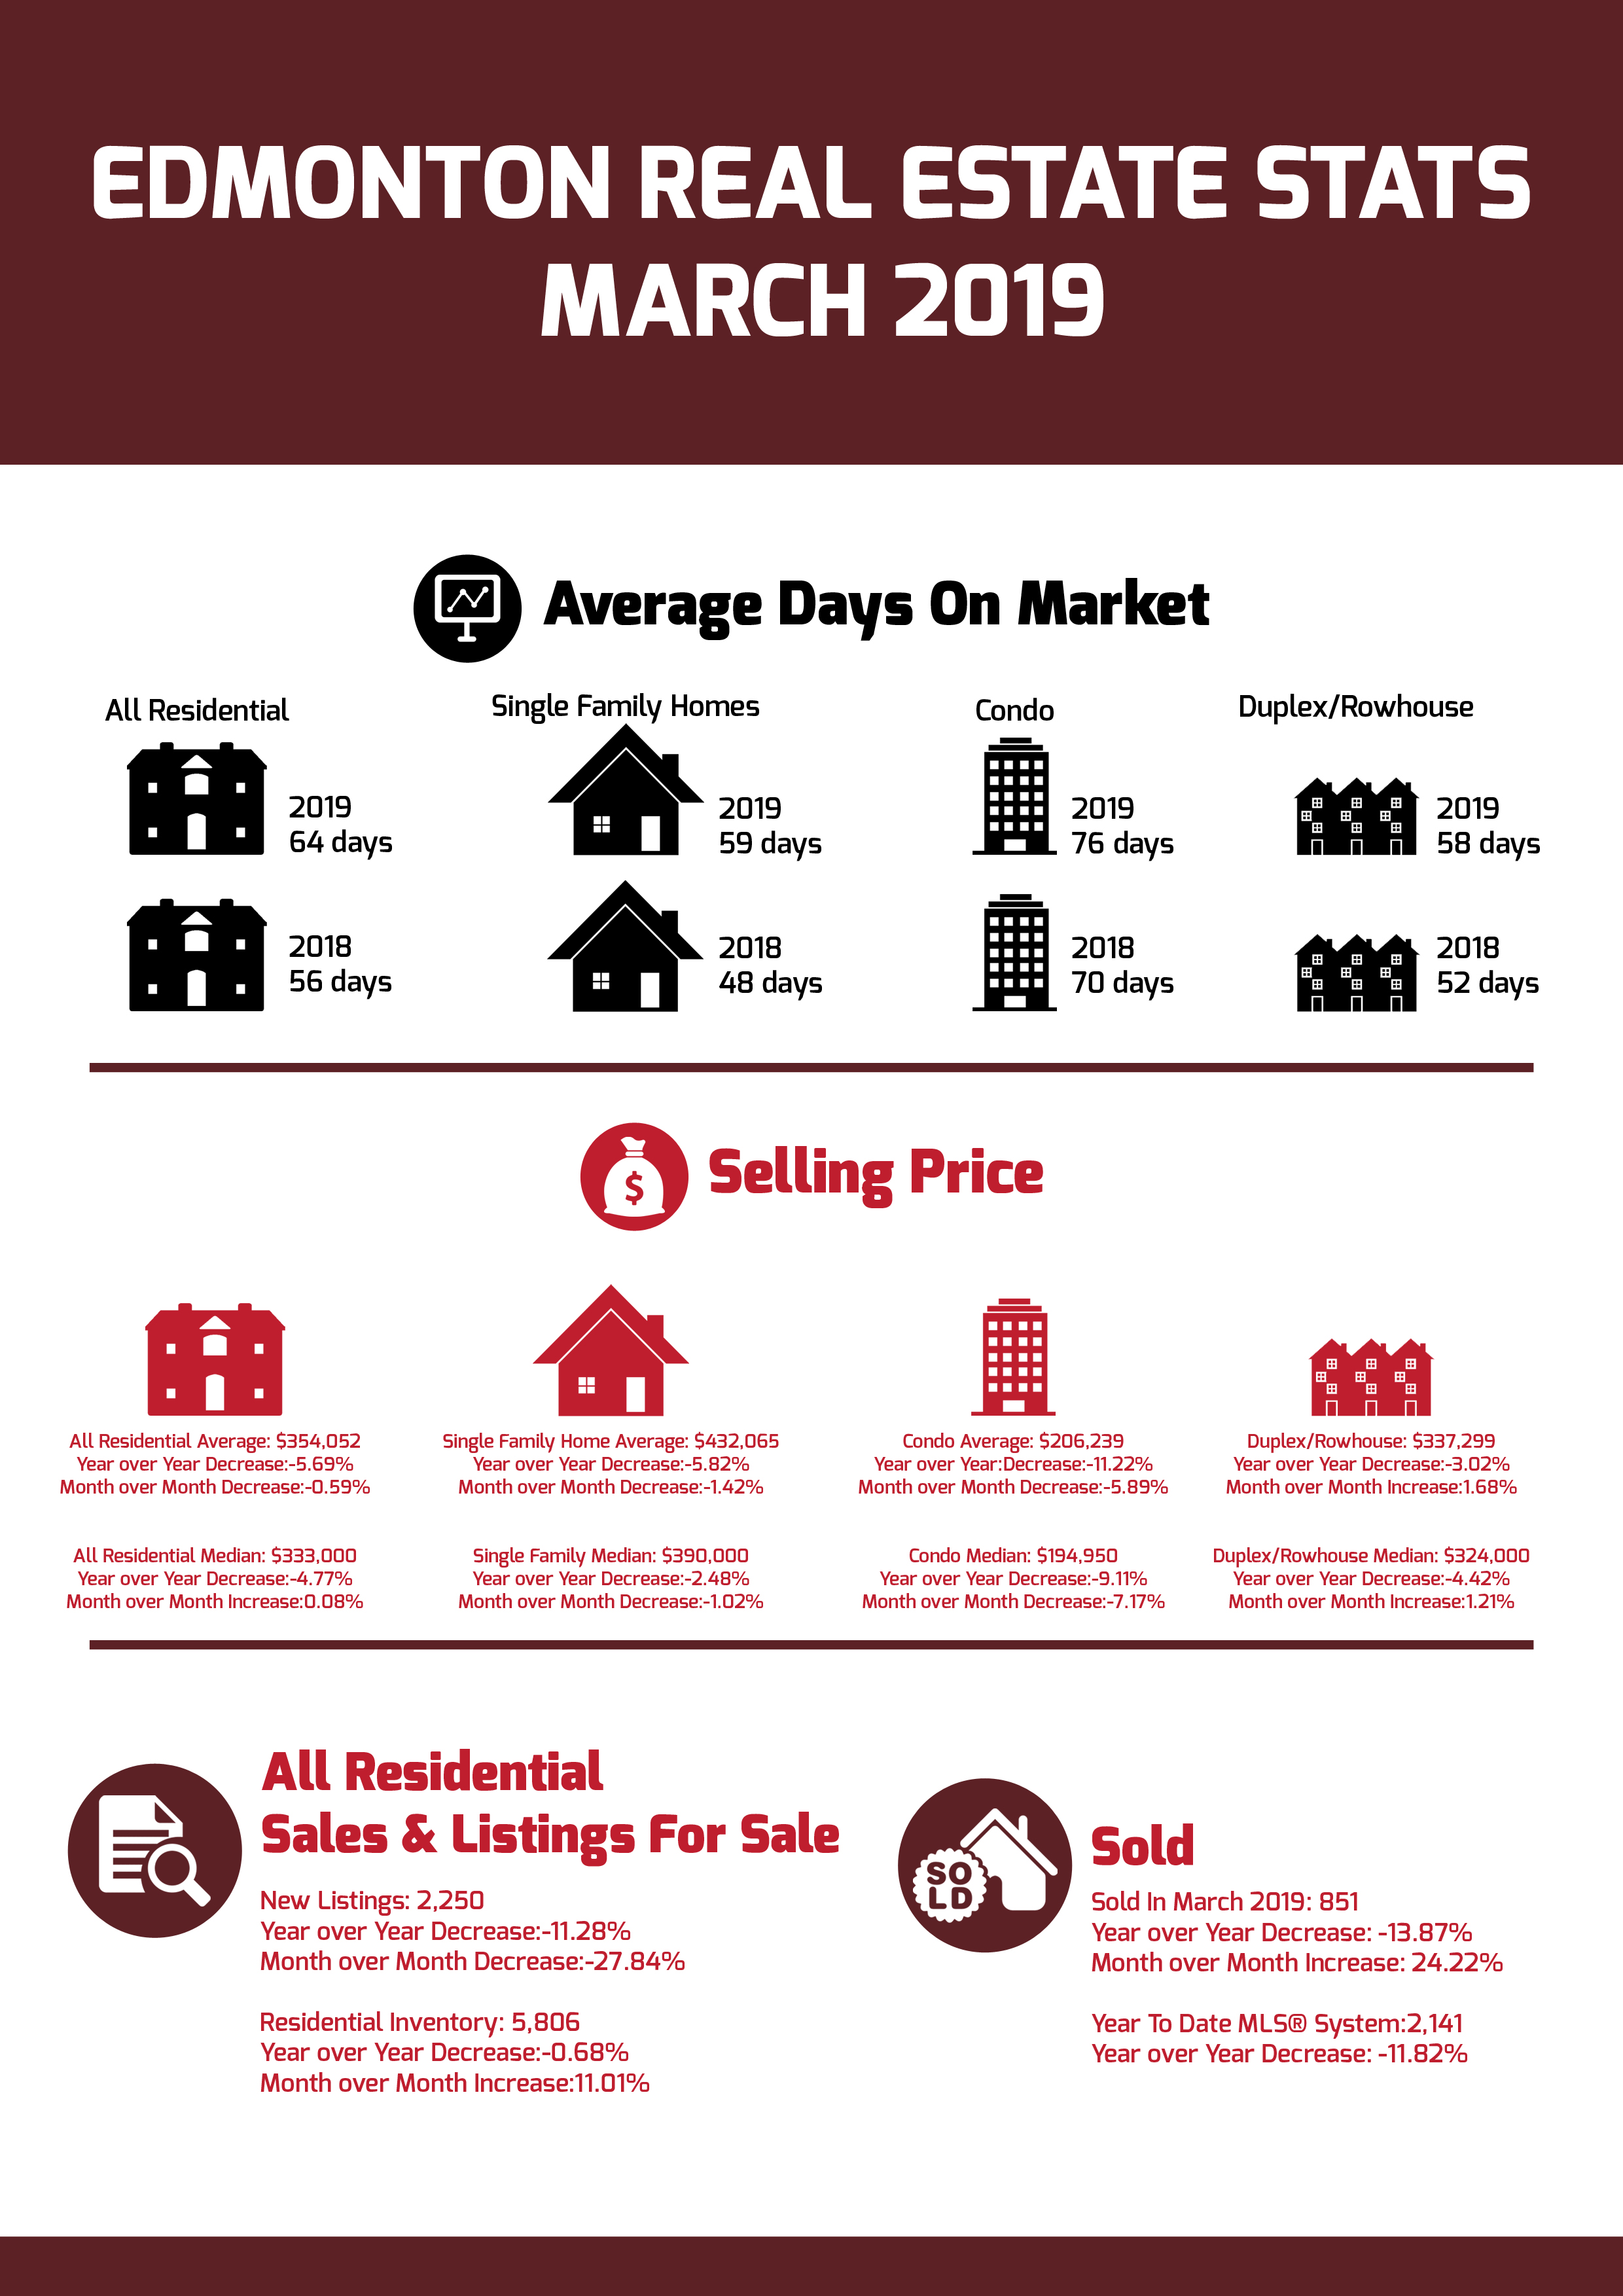 Edmonton Real Estate Stats March 2019